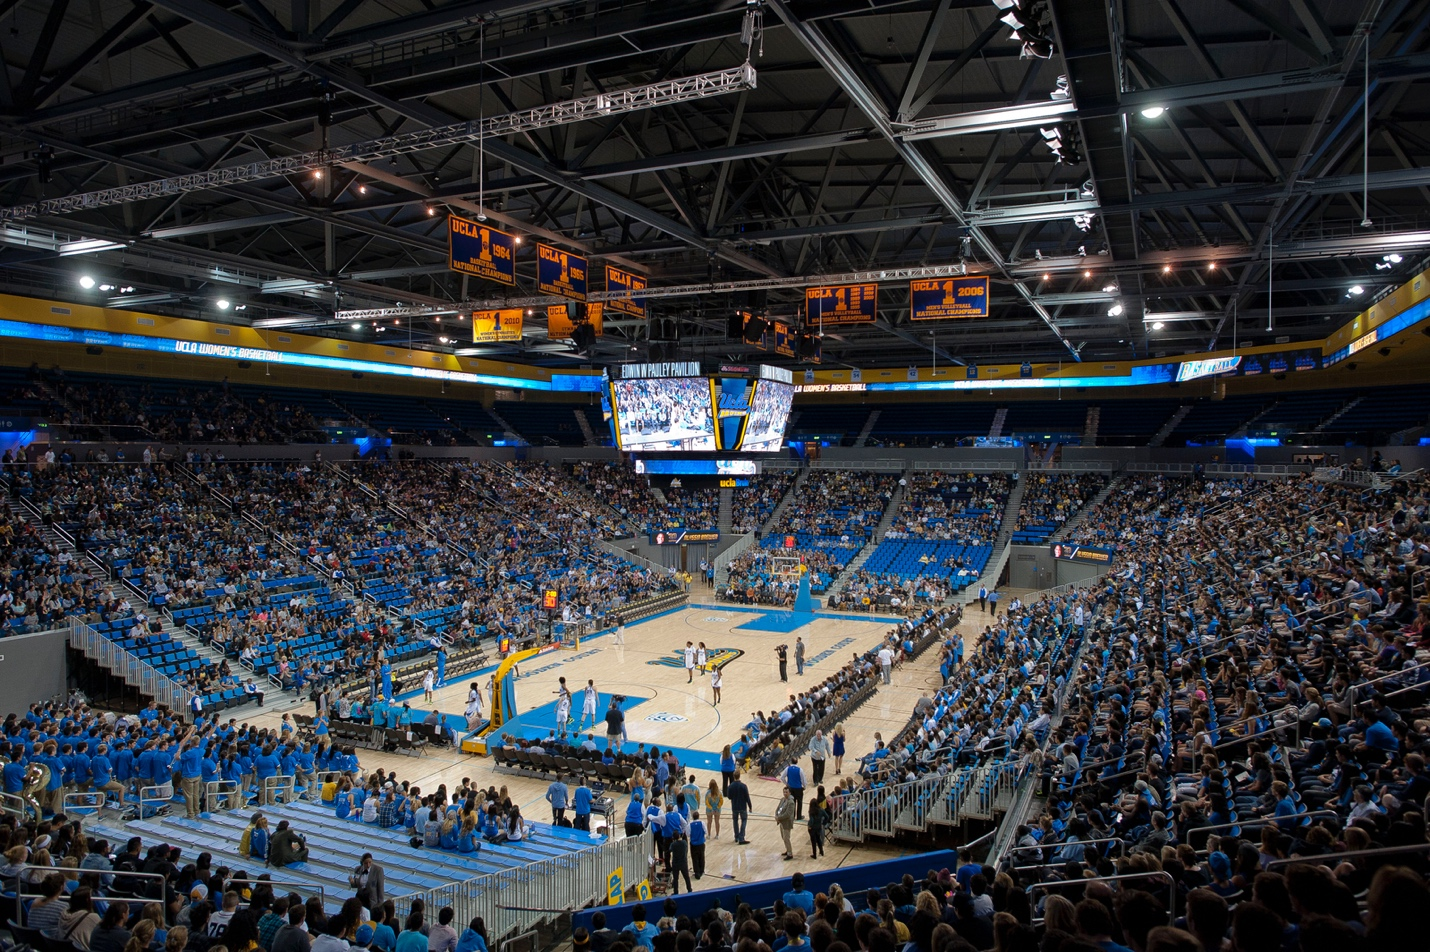 College Sports Arenas | Naming Rights | Sports Law